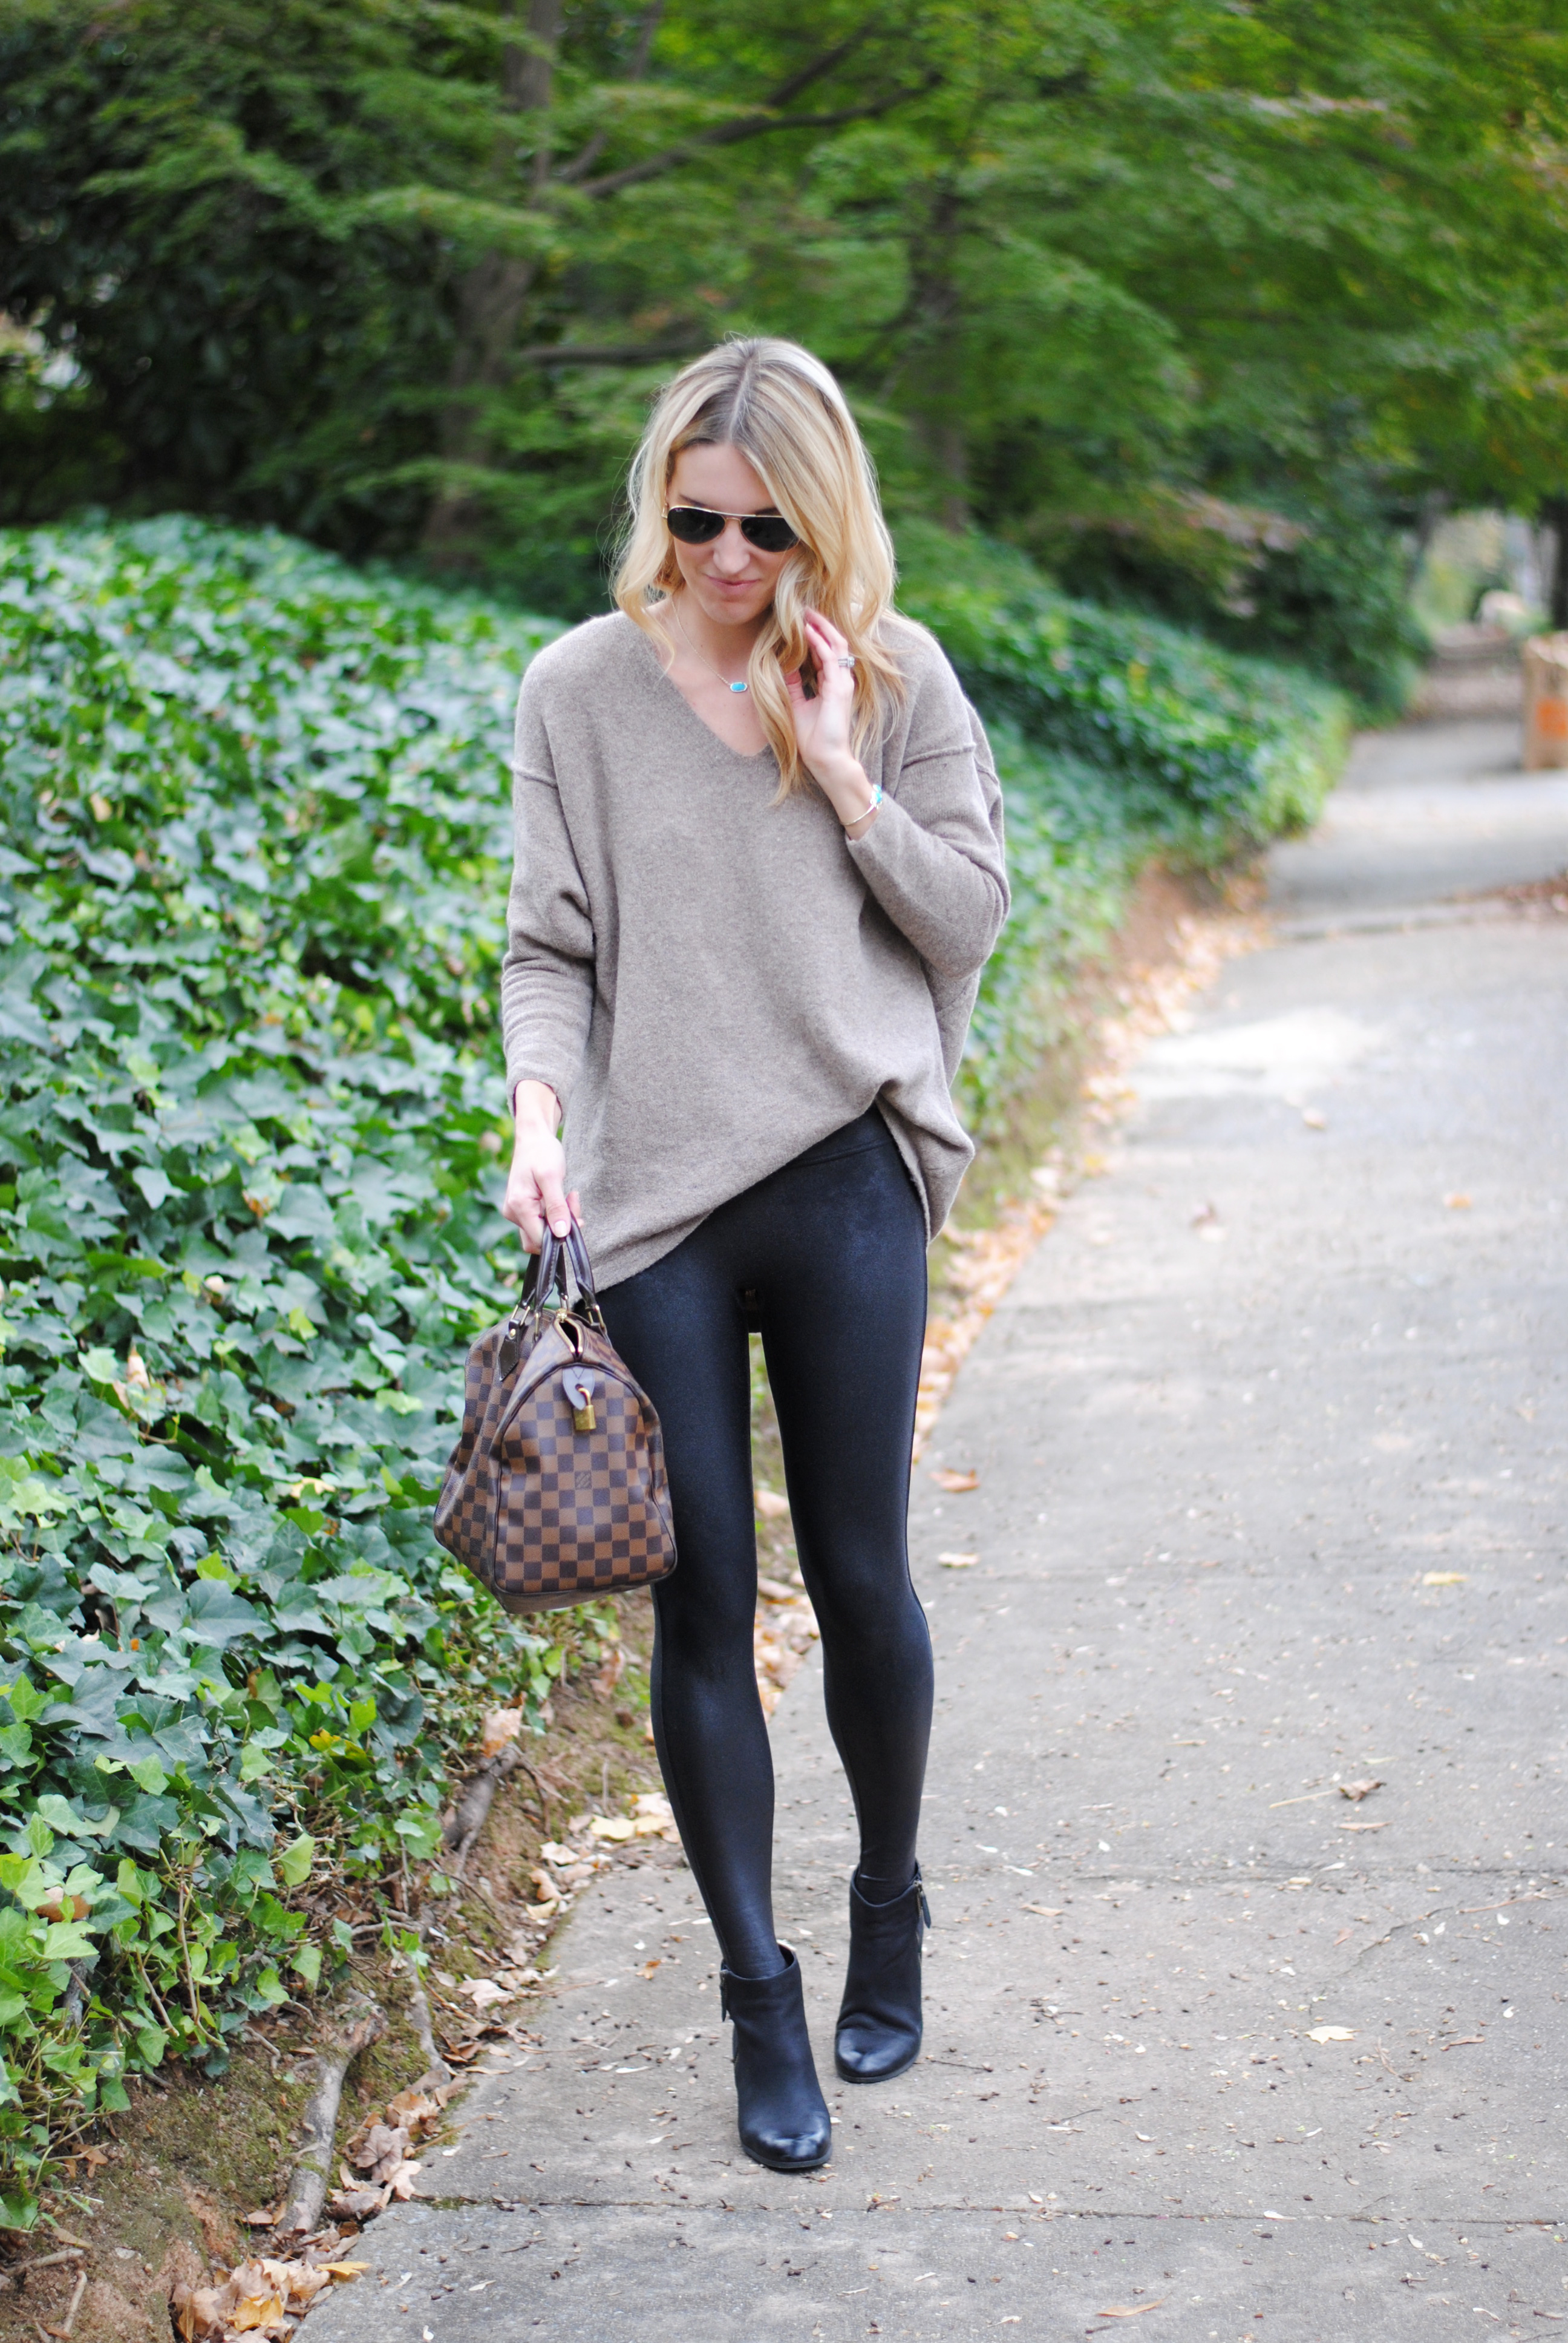 original spanx leather leggings outfits 11